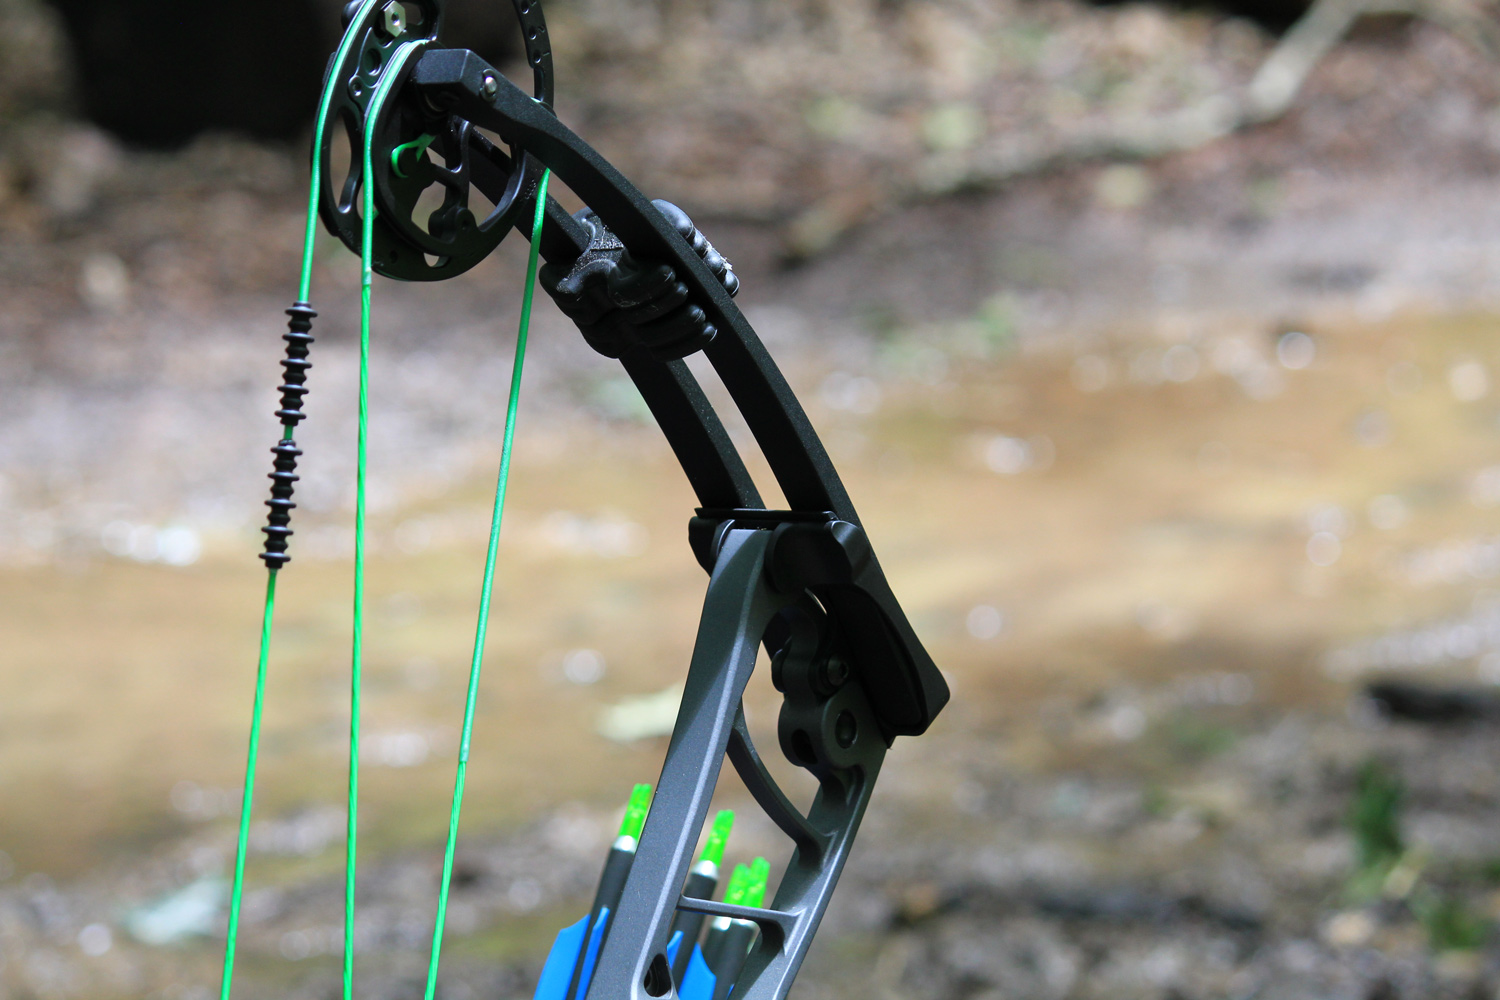 Winner's Choice Strings - Fluorescent Green Colors on a 452X Material